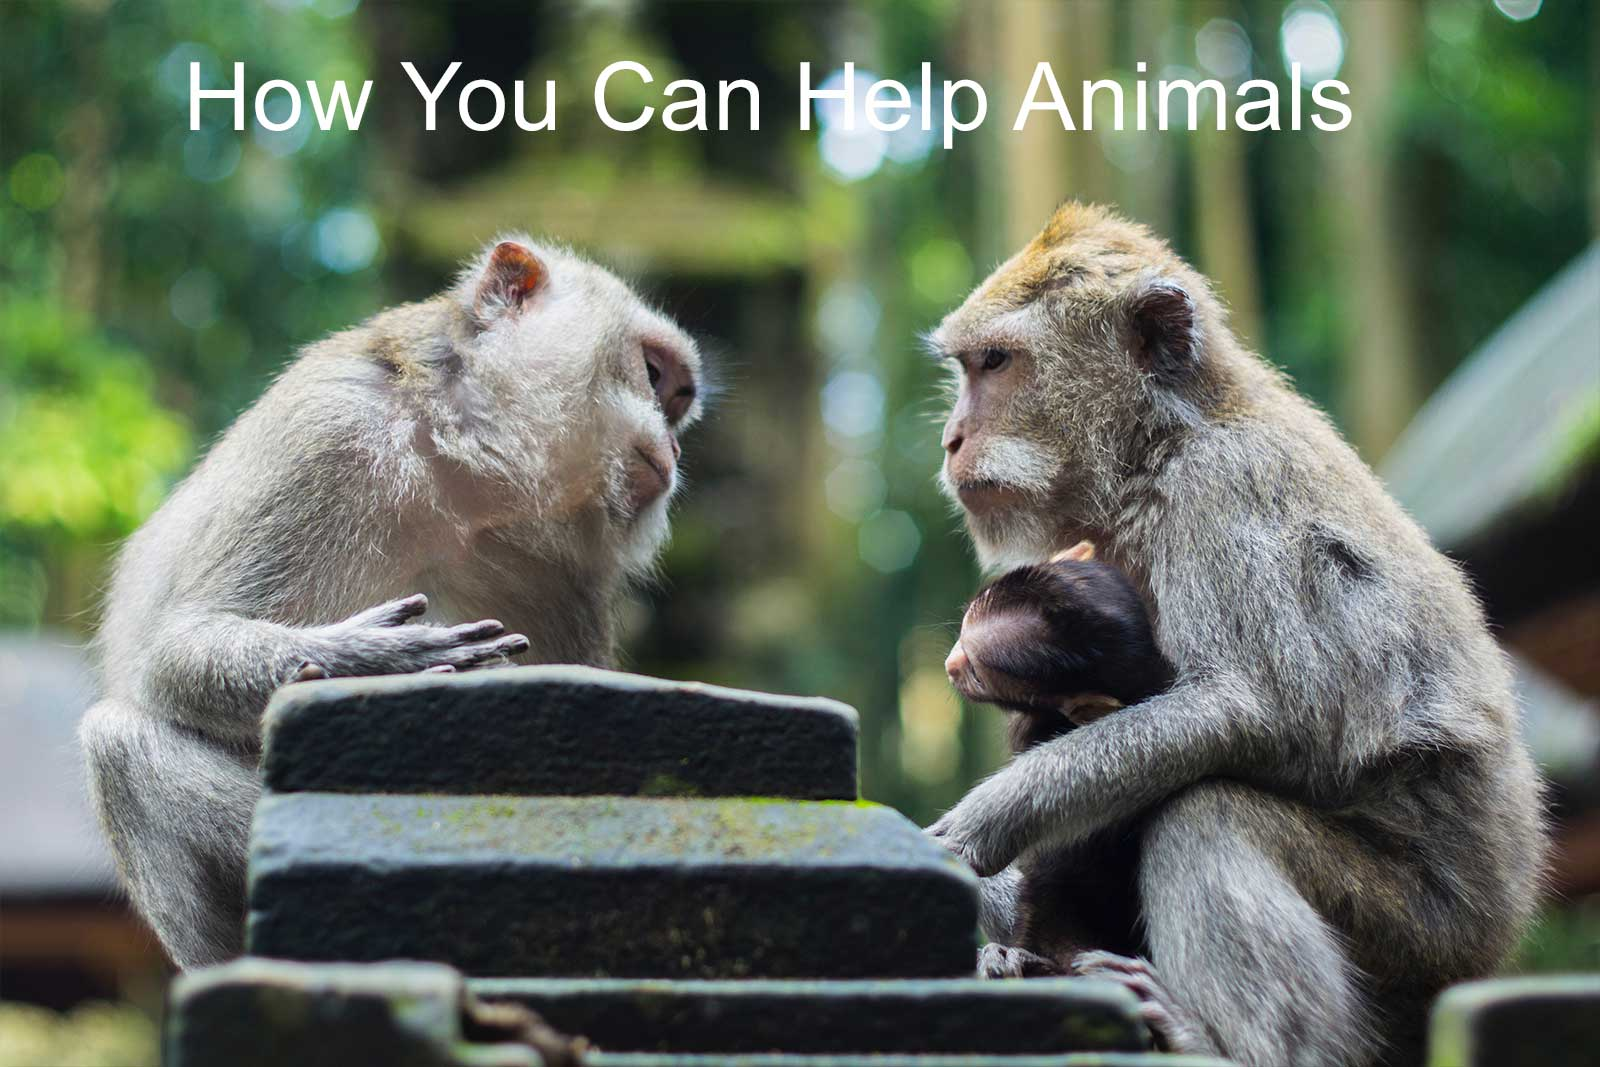 How to help animals 86